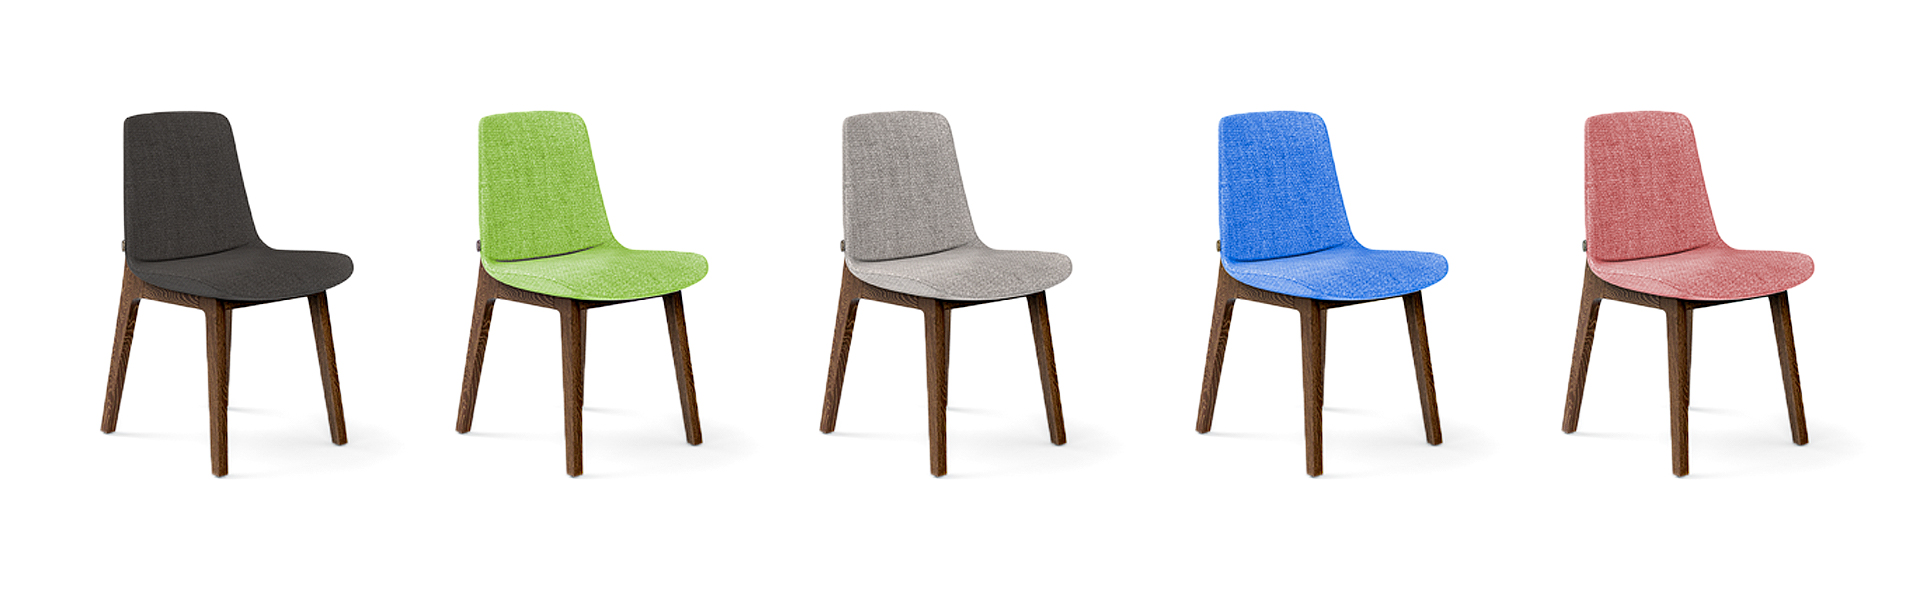 Colourways Chair Renders